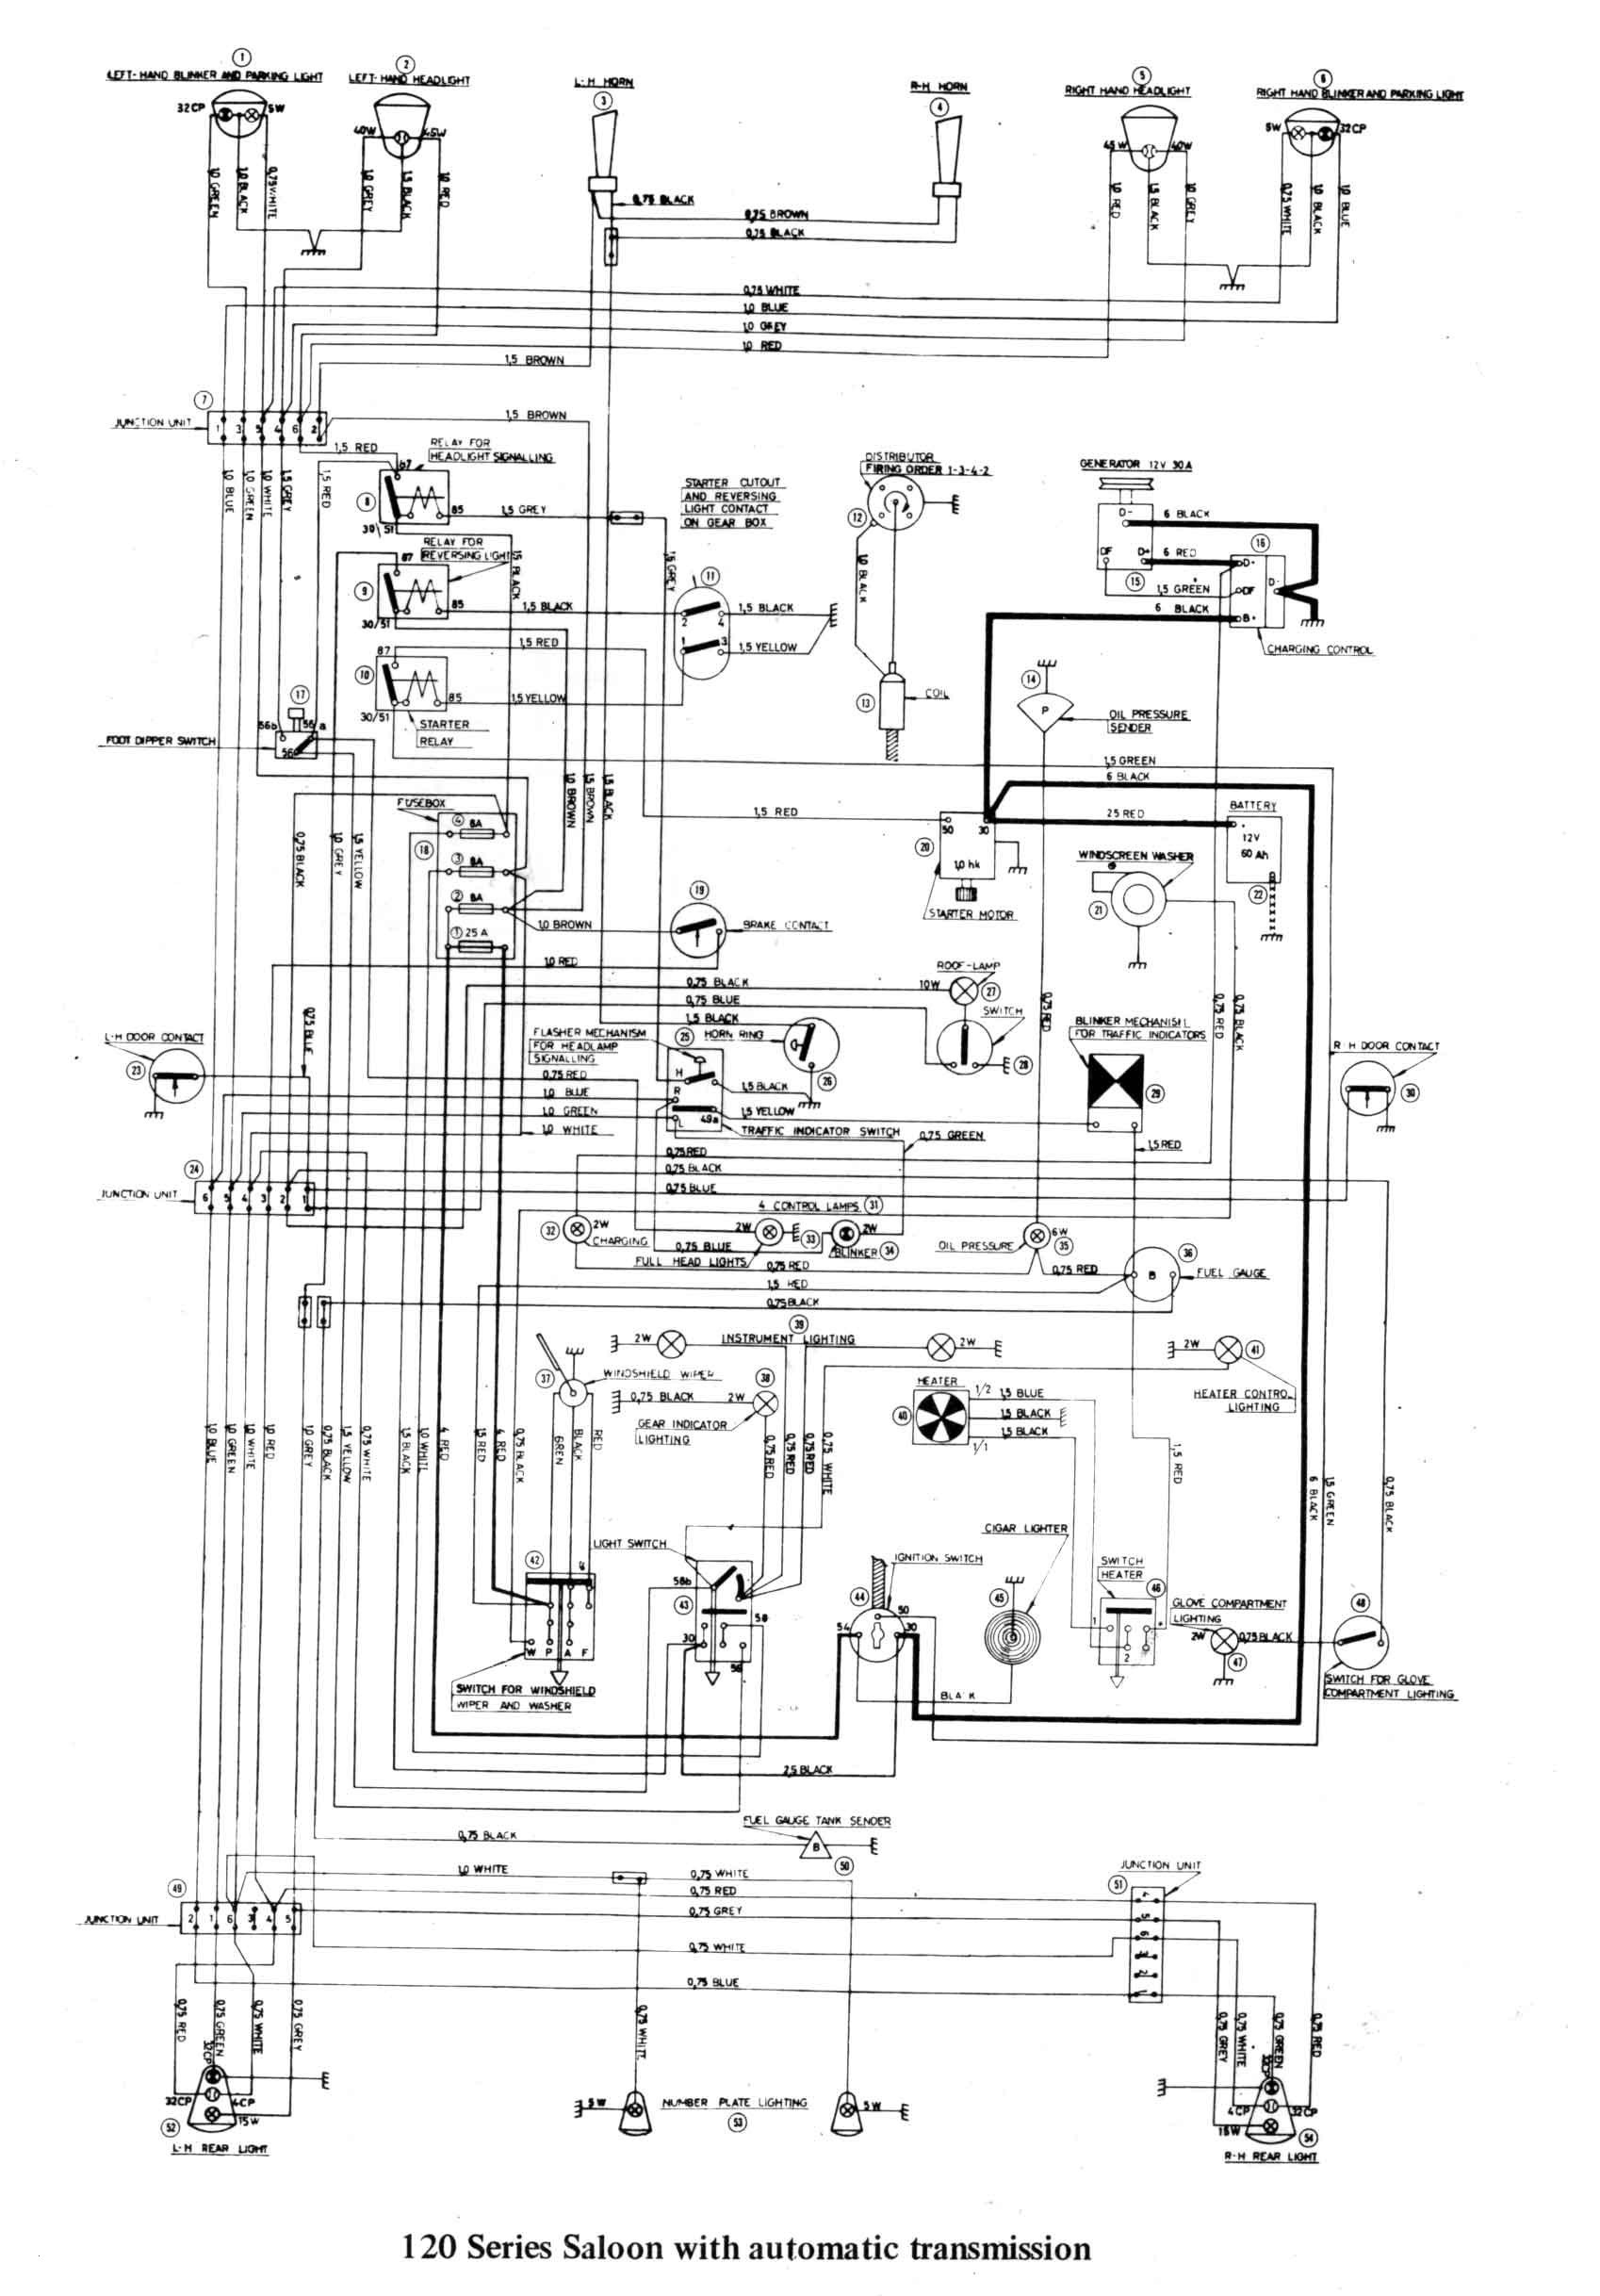 Diagram Of Car for Accident Automotive Wiring Diagrams Schaferforcongressfo Of Diagram Of Car for Accident